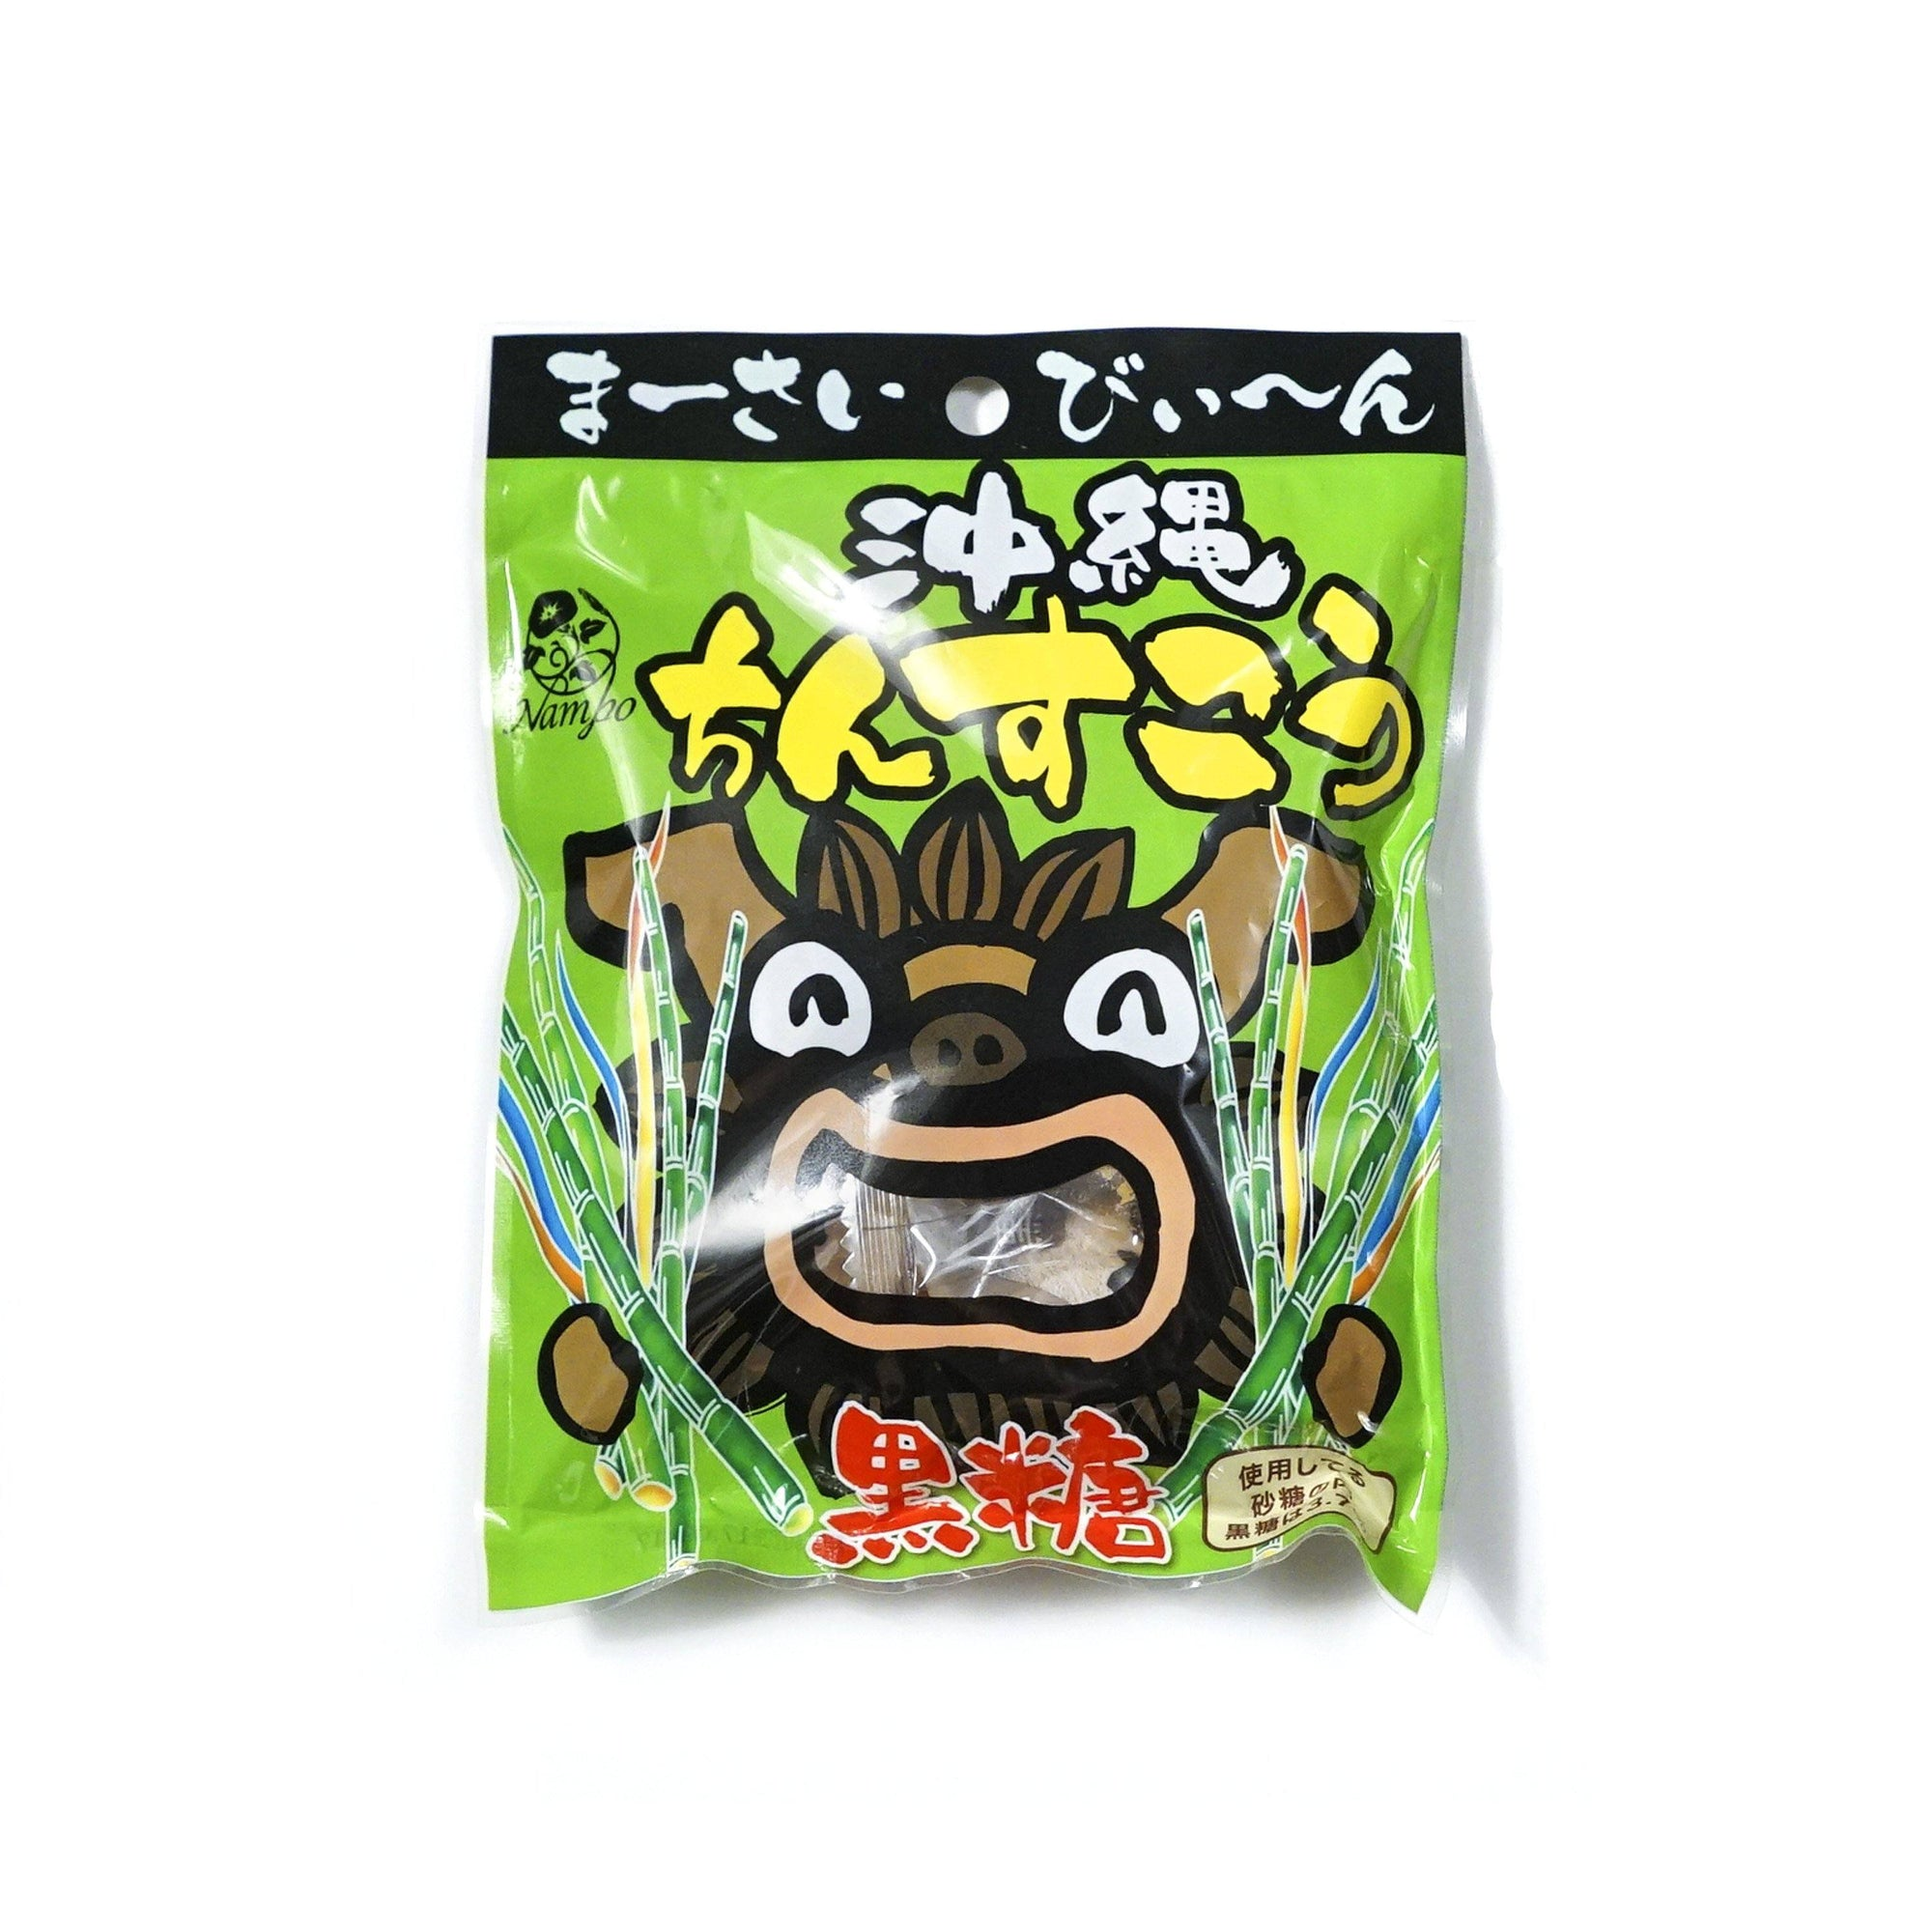 Okinawa Chinsuko (Brown Sugar)